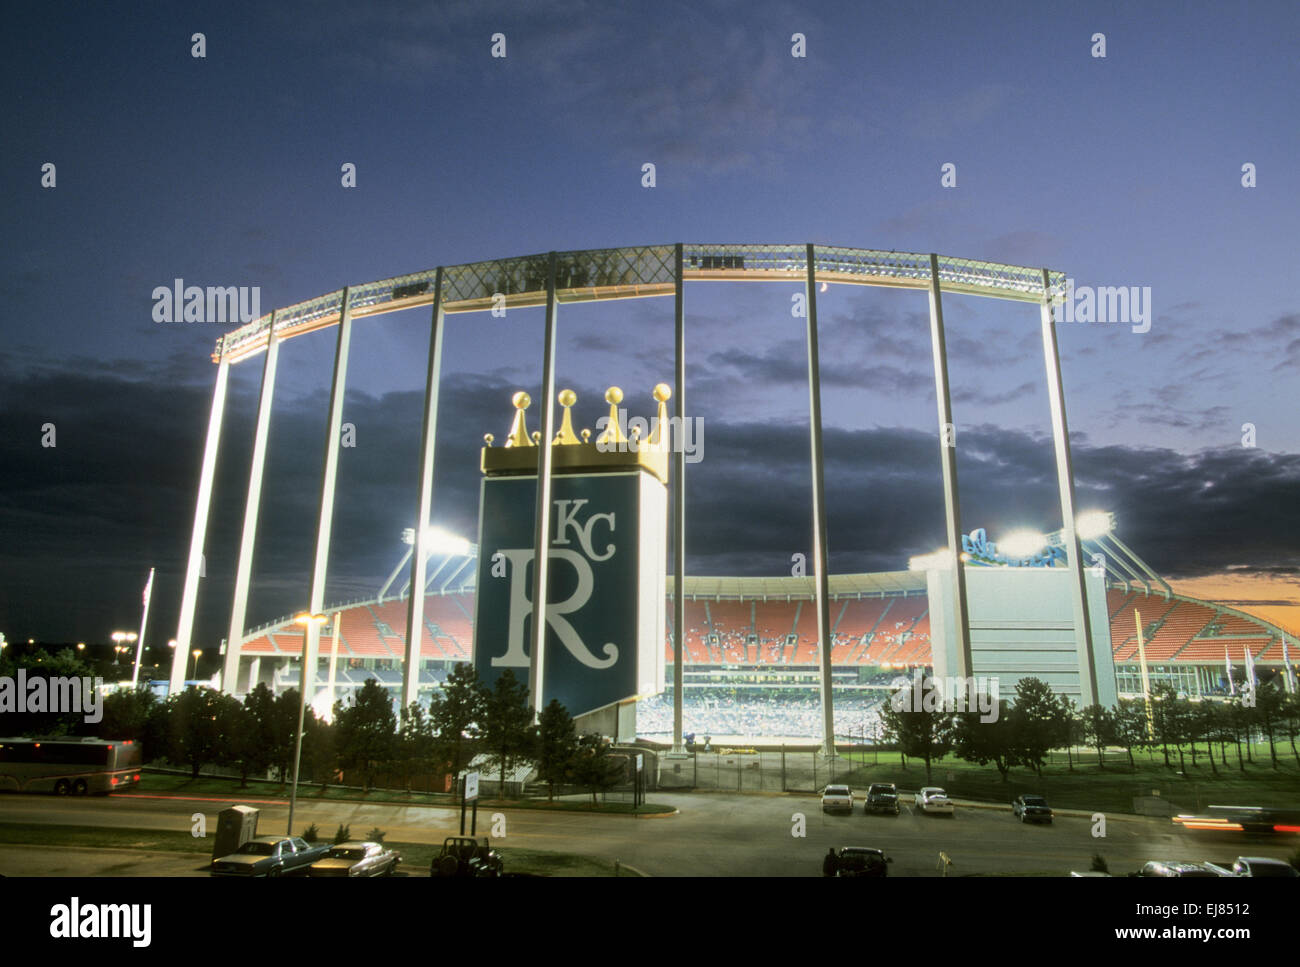 KANSAS CITY, MO – APRIL 10: Kansas City, Royals baseball fans at Kauffman Stadium in Kansas City, Missouri on April - Stock Image